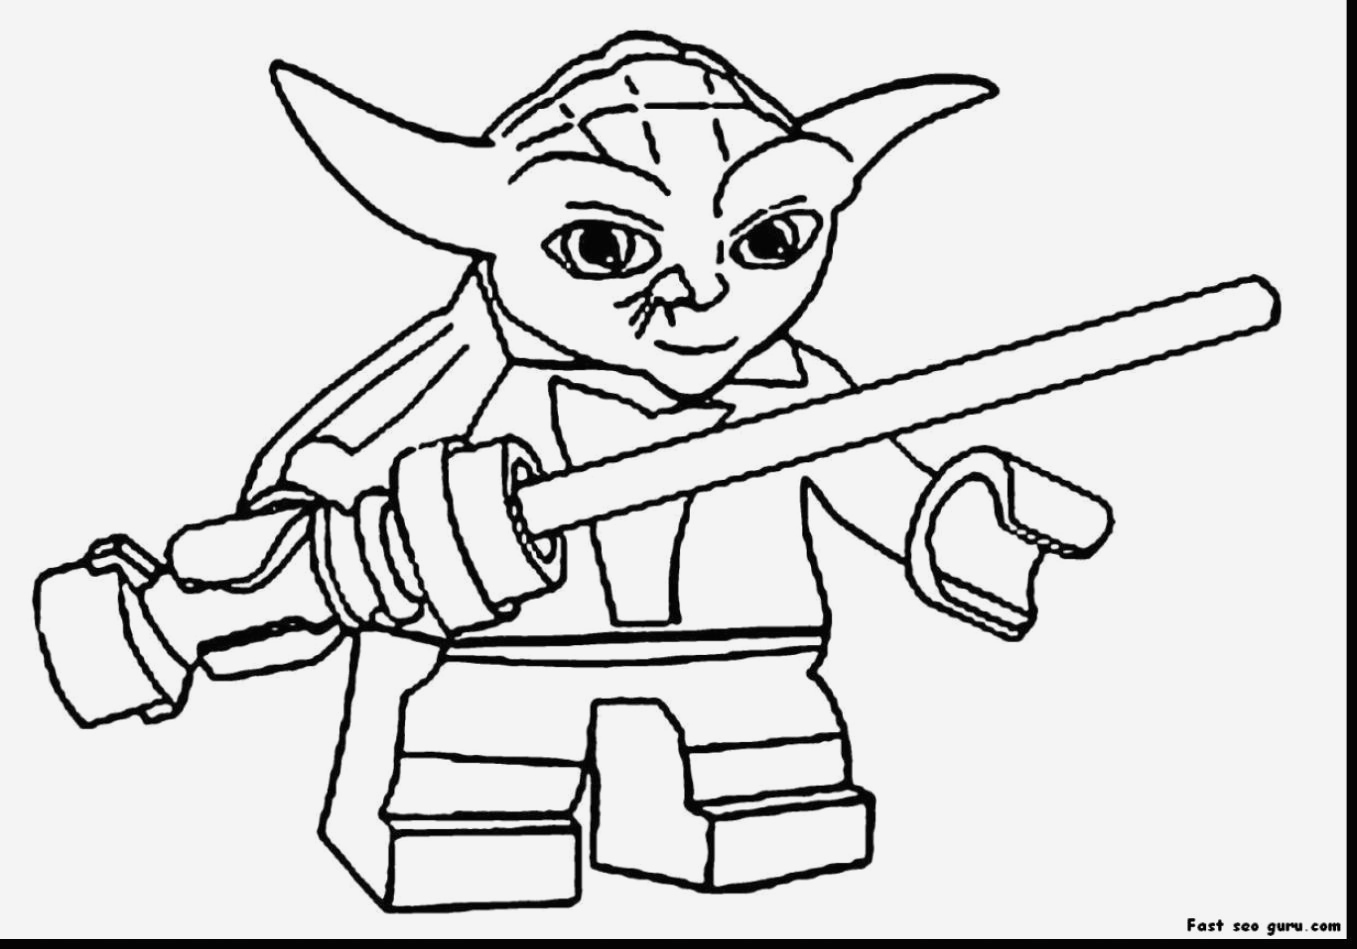 Coloriage Lego Star Wars Unique Star Wars Lego Drawing